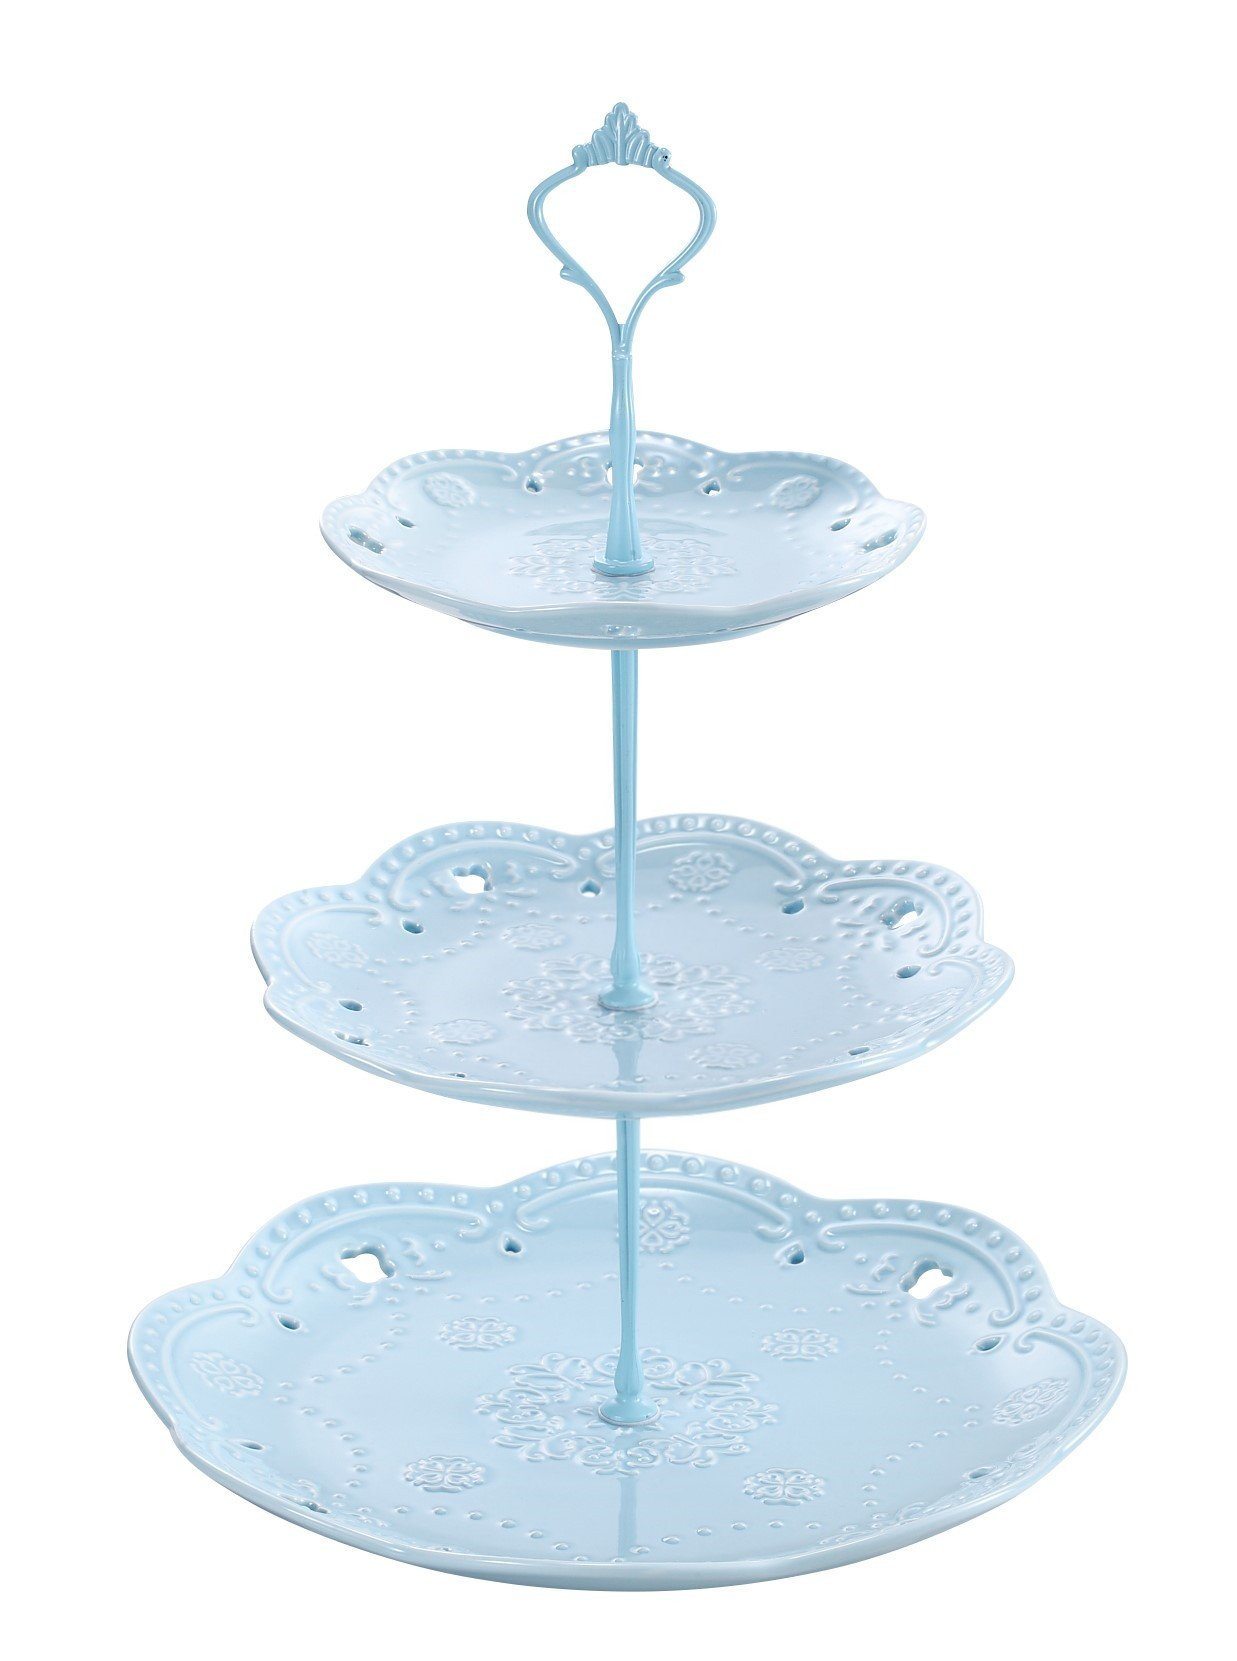 3 -Tier Ceramic Cupcake Stand - Elegant Embossed Porcelain Dessert Display Cake Stand - For Birthday Weddings Tea Party Colorful and Diverse (blue)